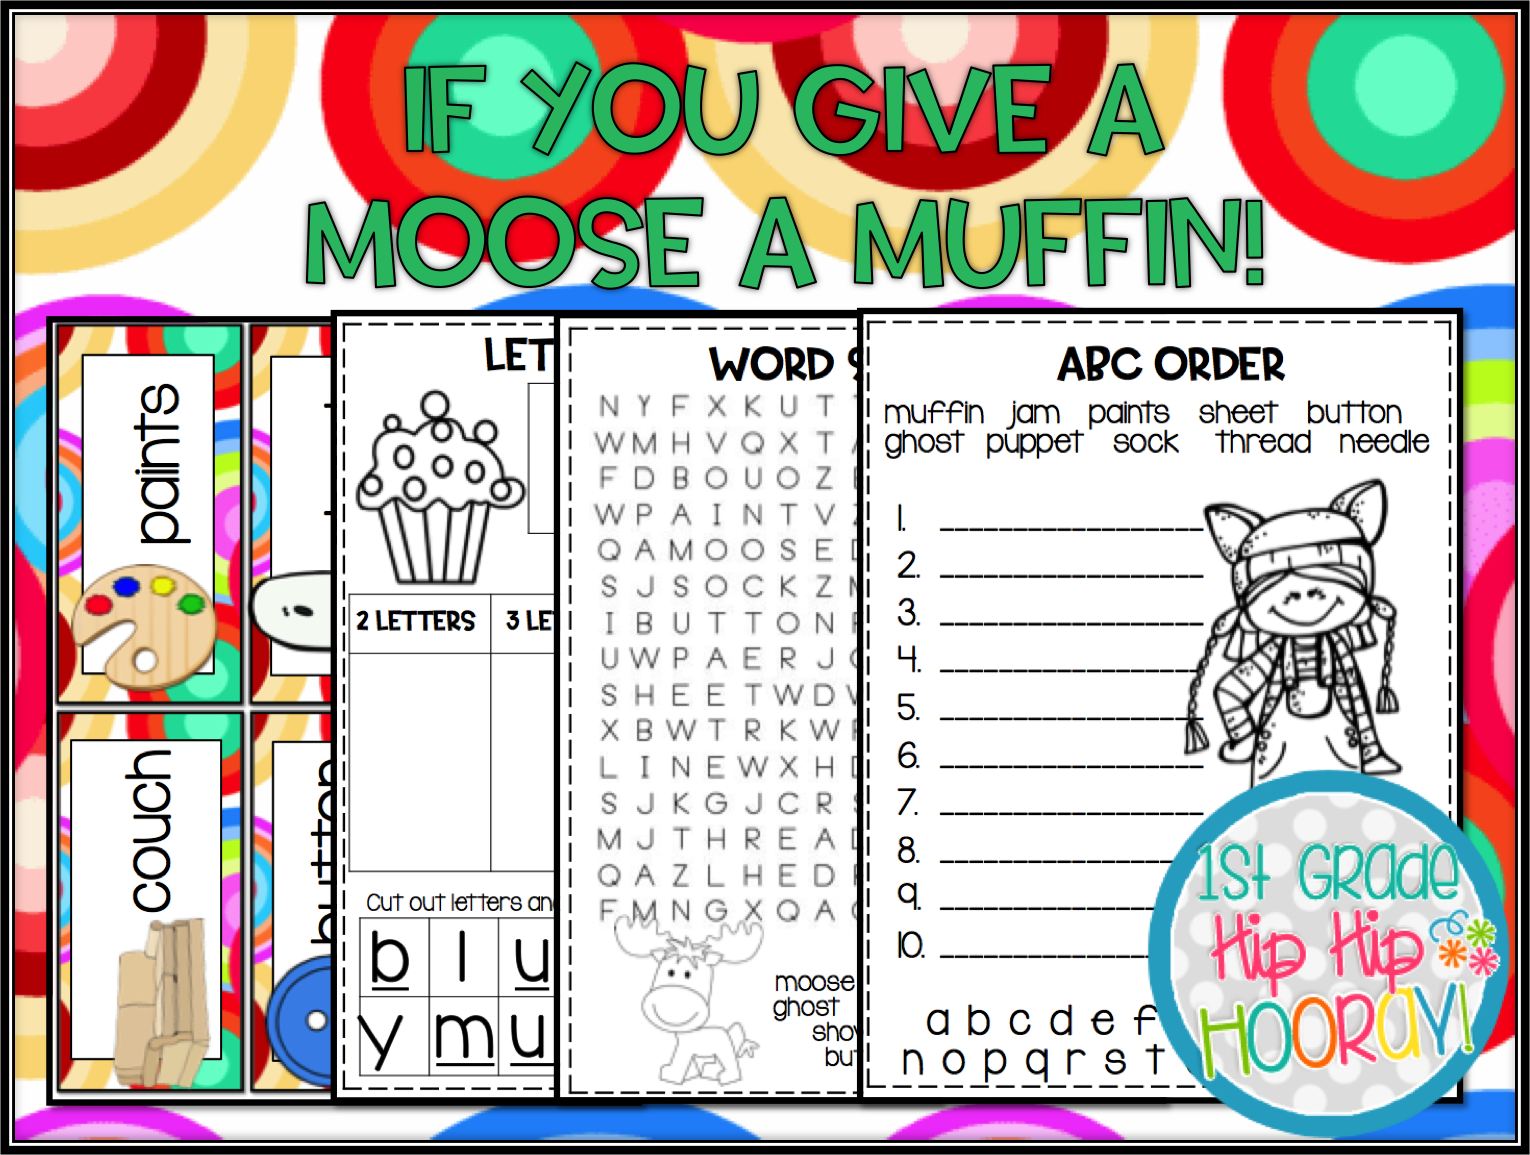 1st Grade Hip Hip Hooray If You Give A Moose A Muffin